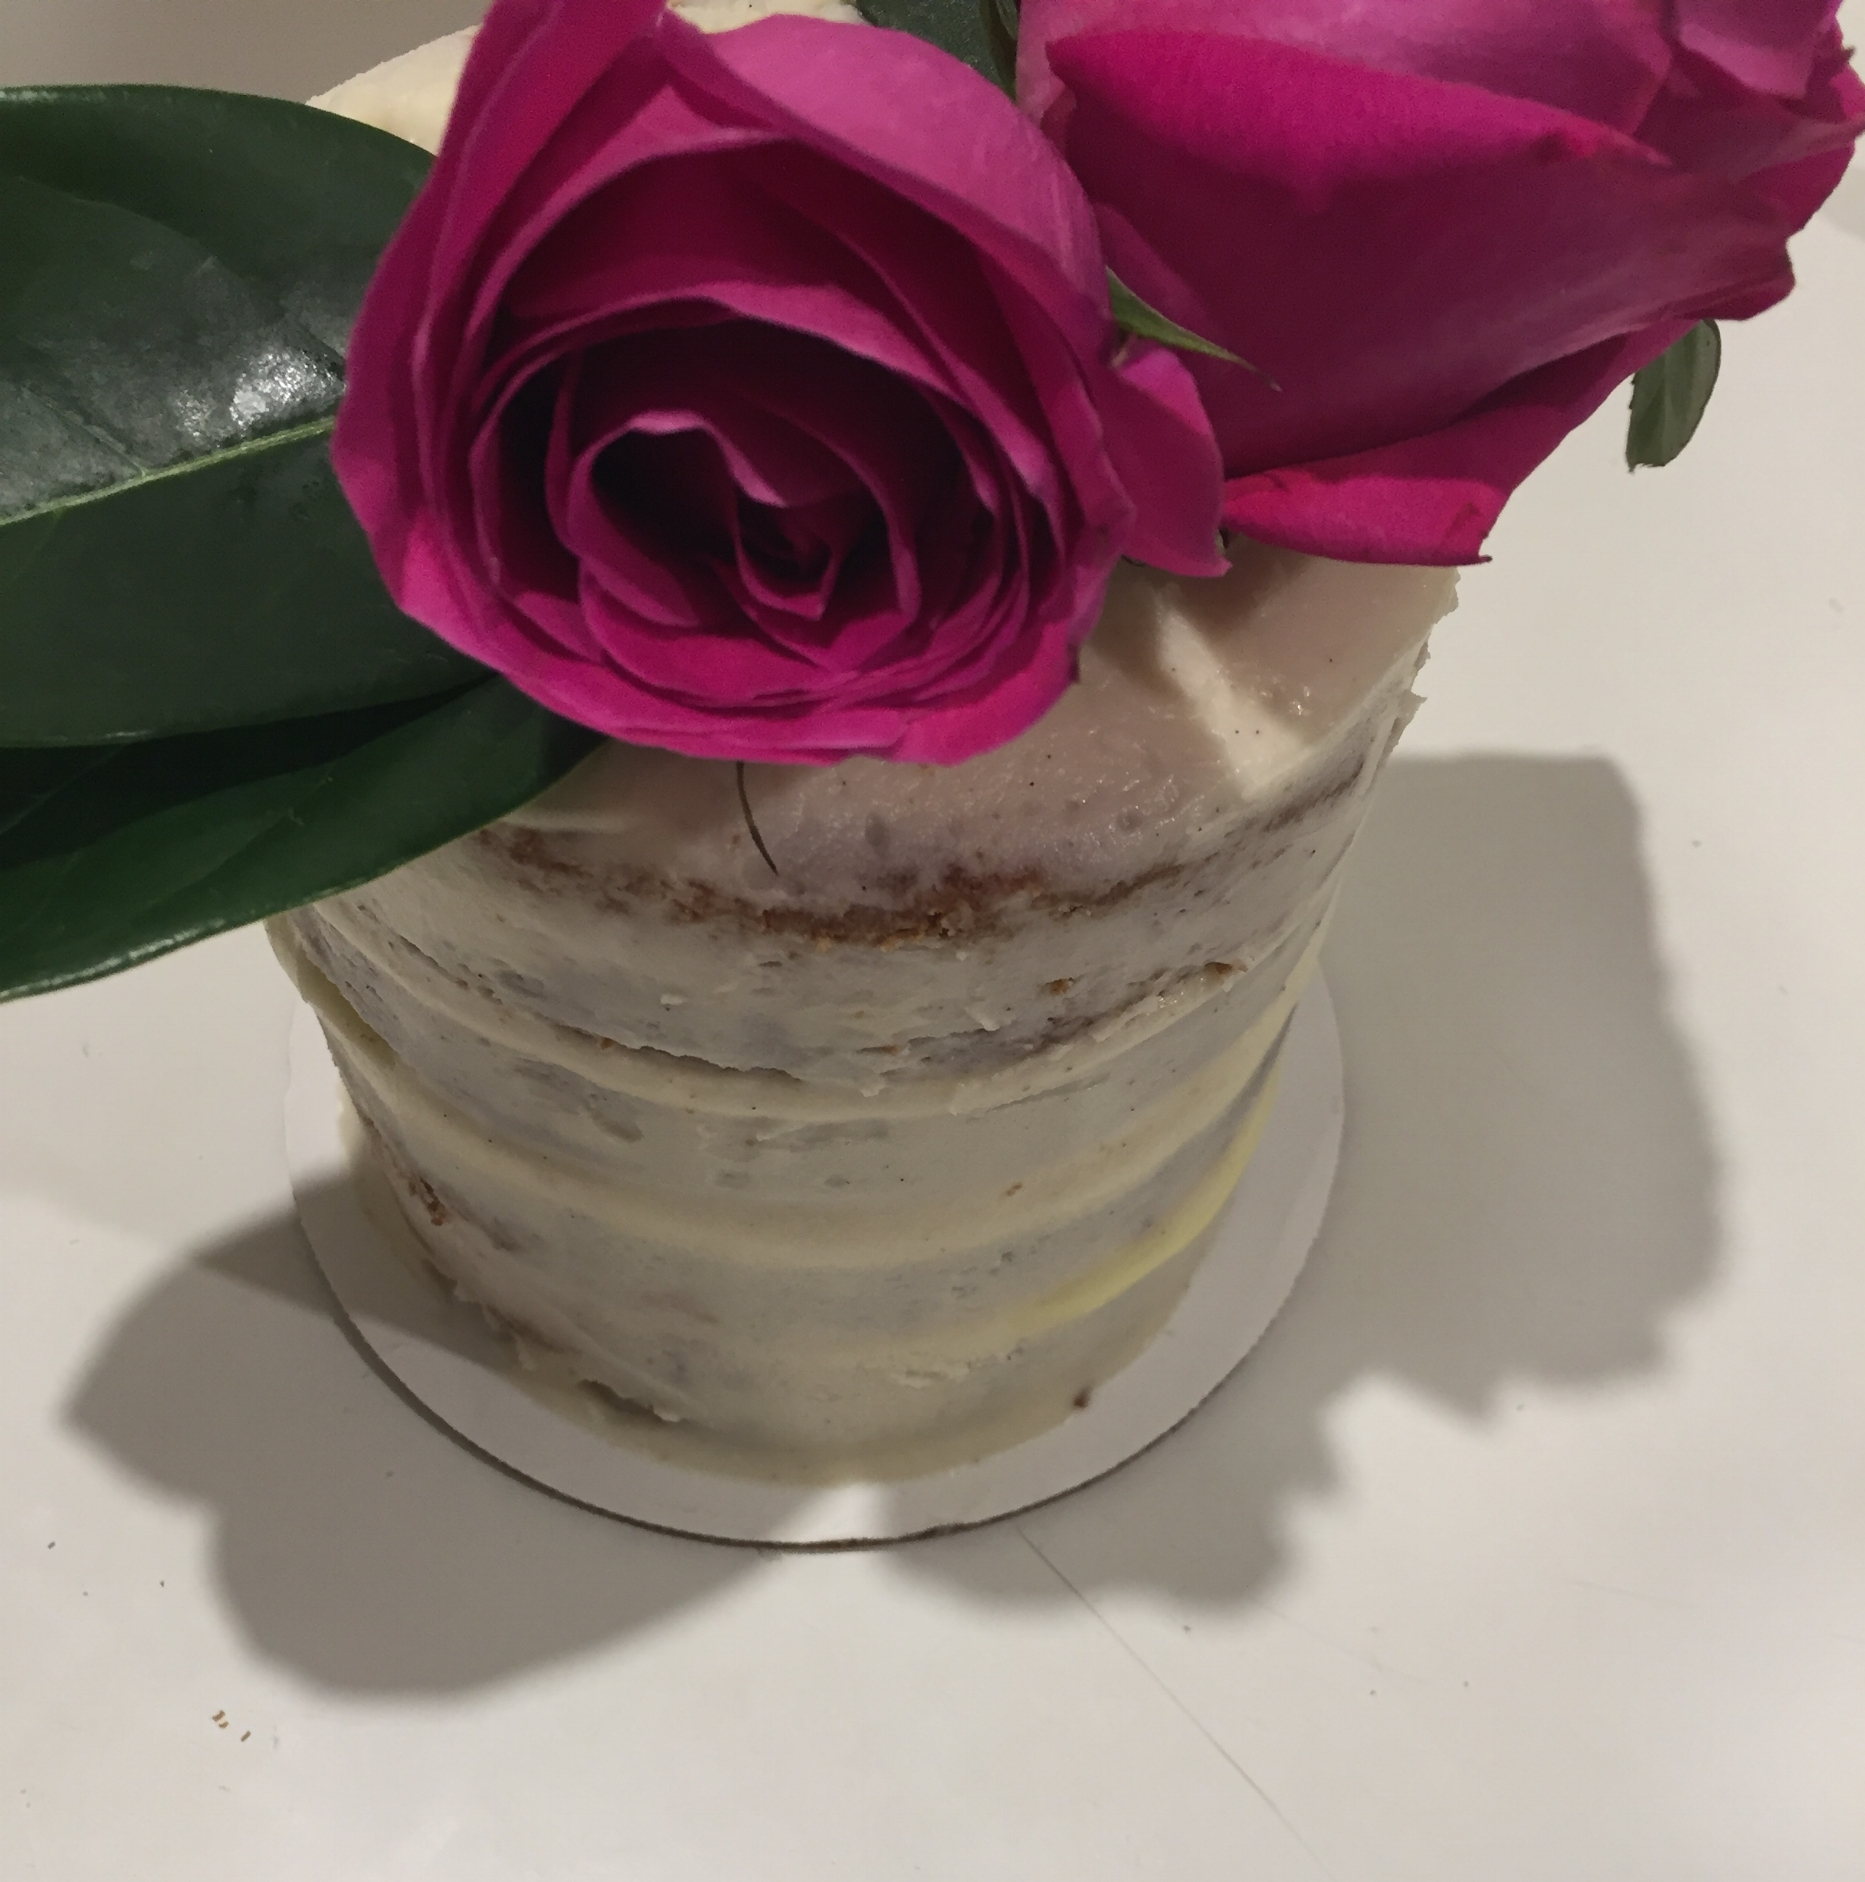 Vanilla cake with fresh roses